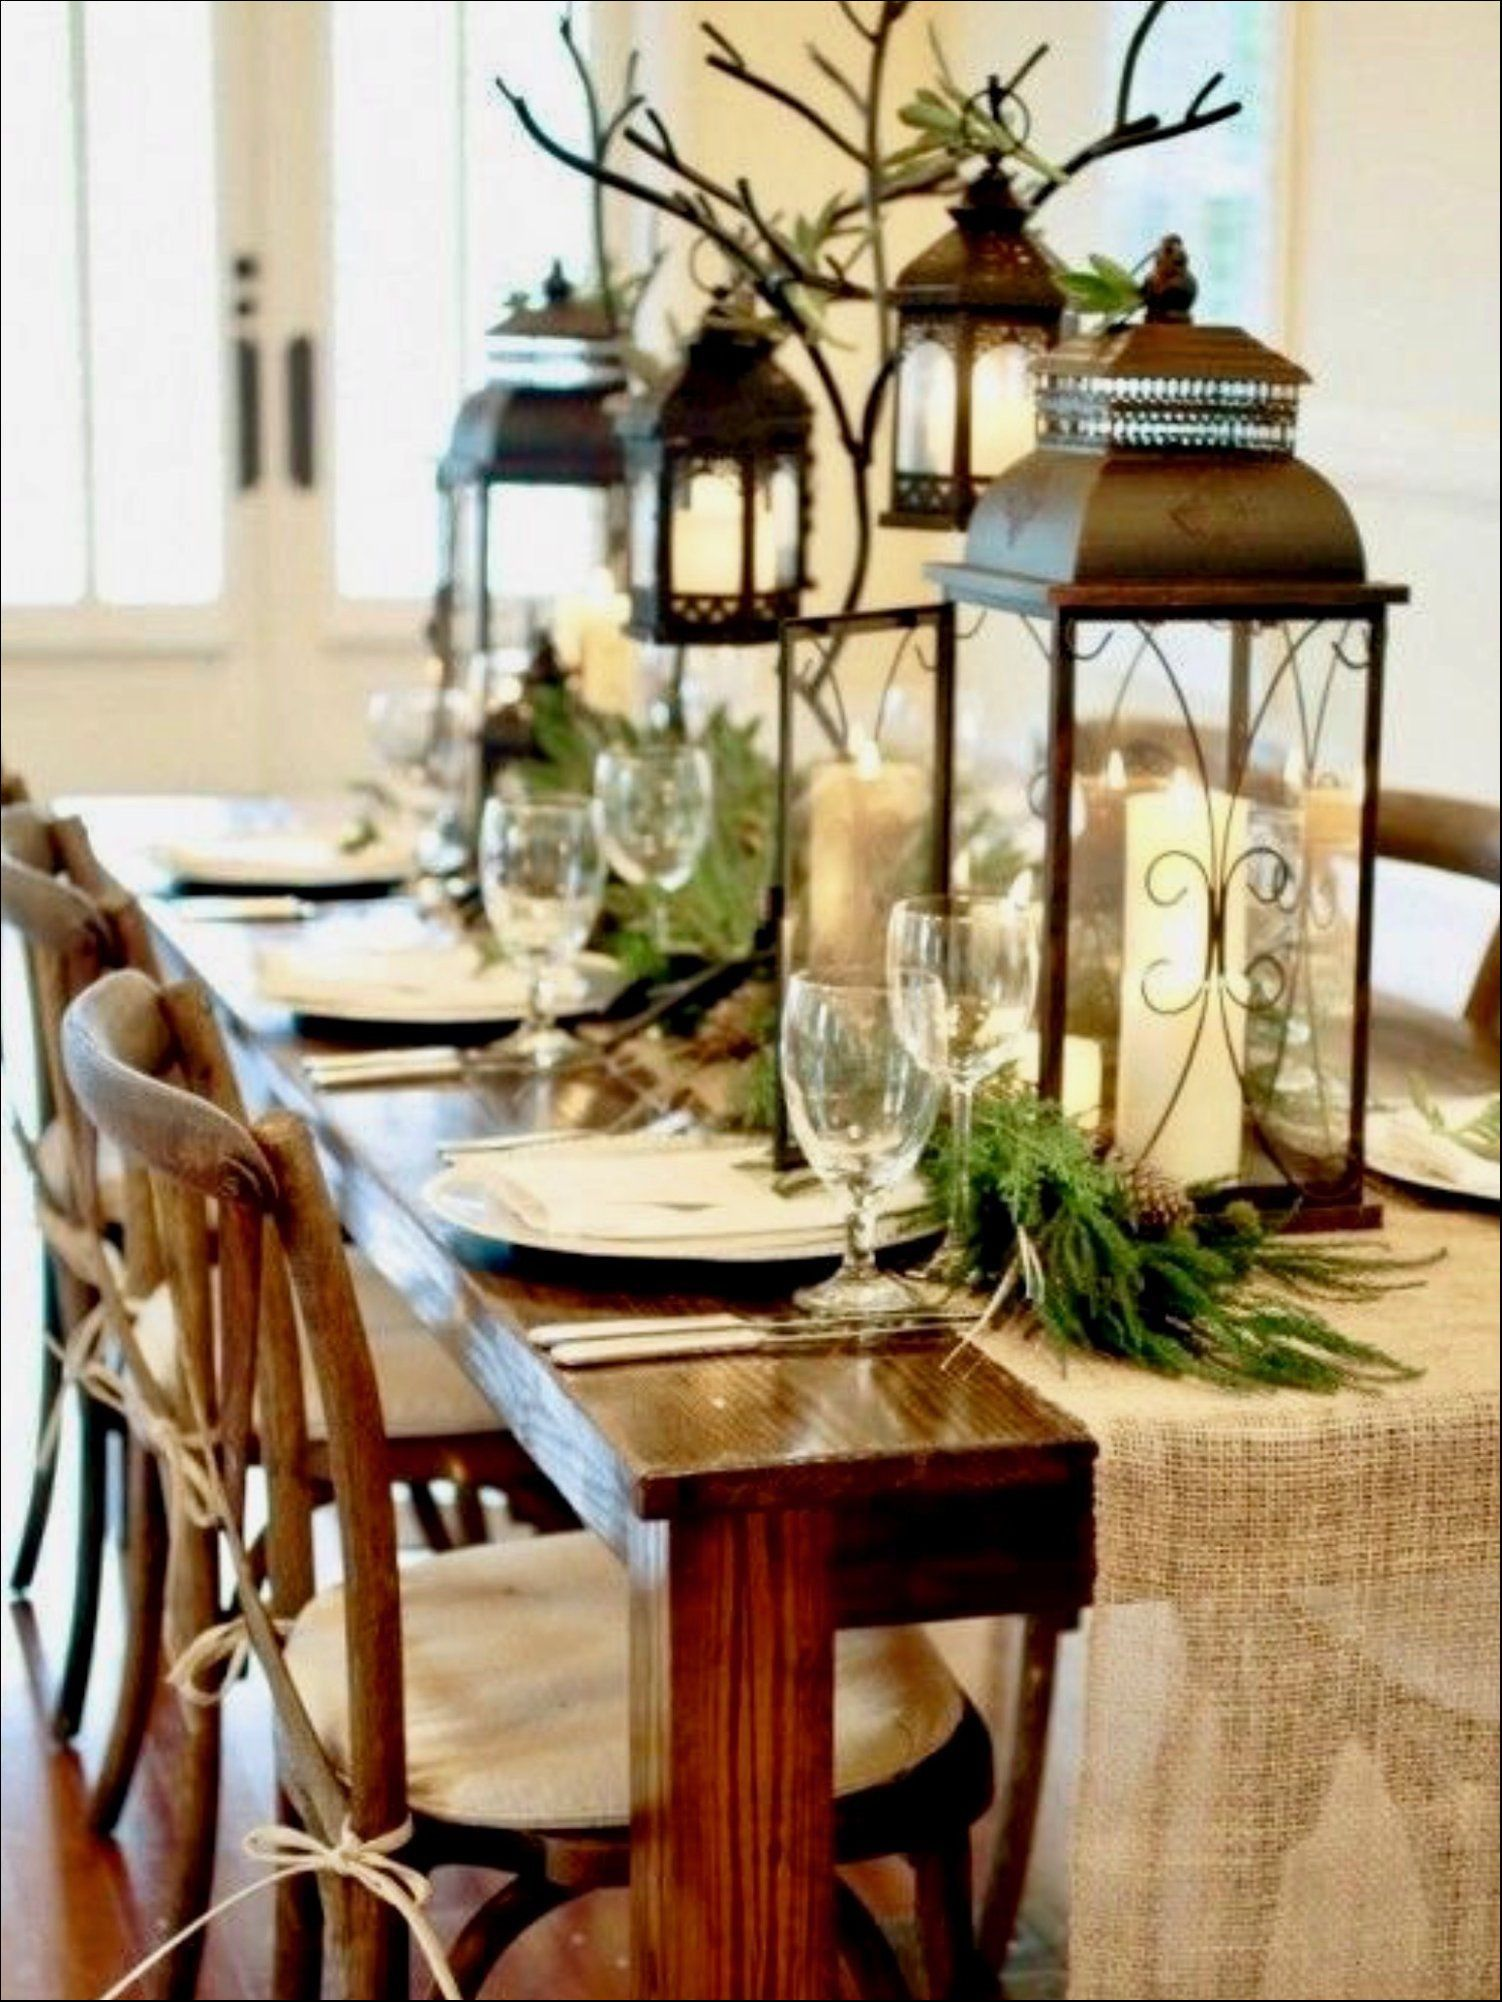 Dining Table Centerpiece Ideas Formal And Unique Dining Room Centerpiece Dining Table Centerpiece Dining Room Table Centerpieces Dining Room Centerpiece